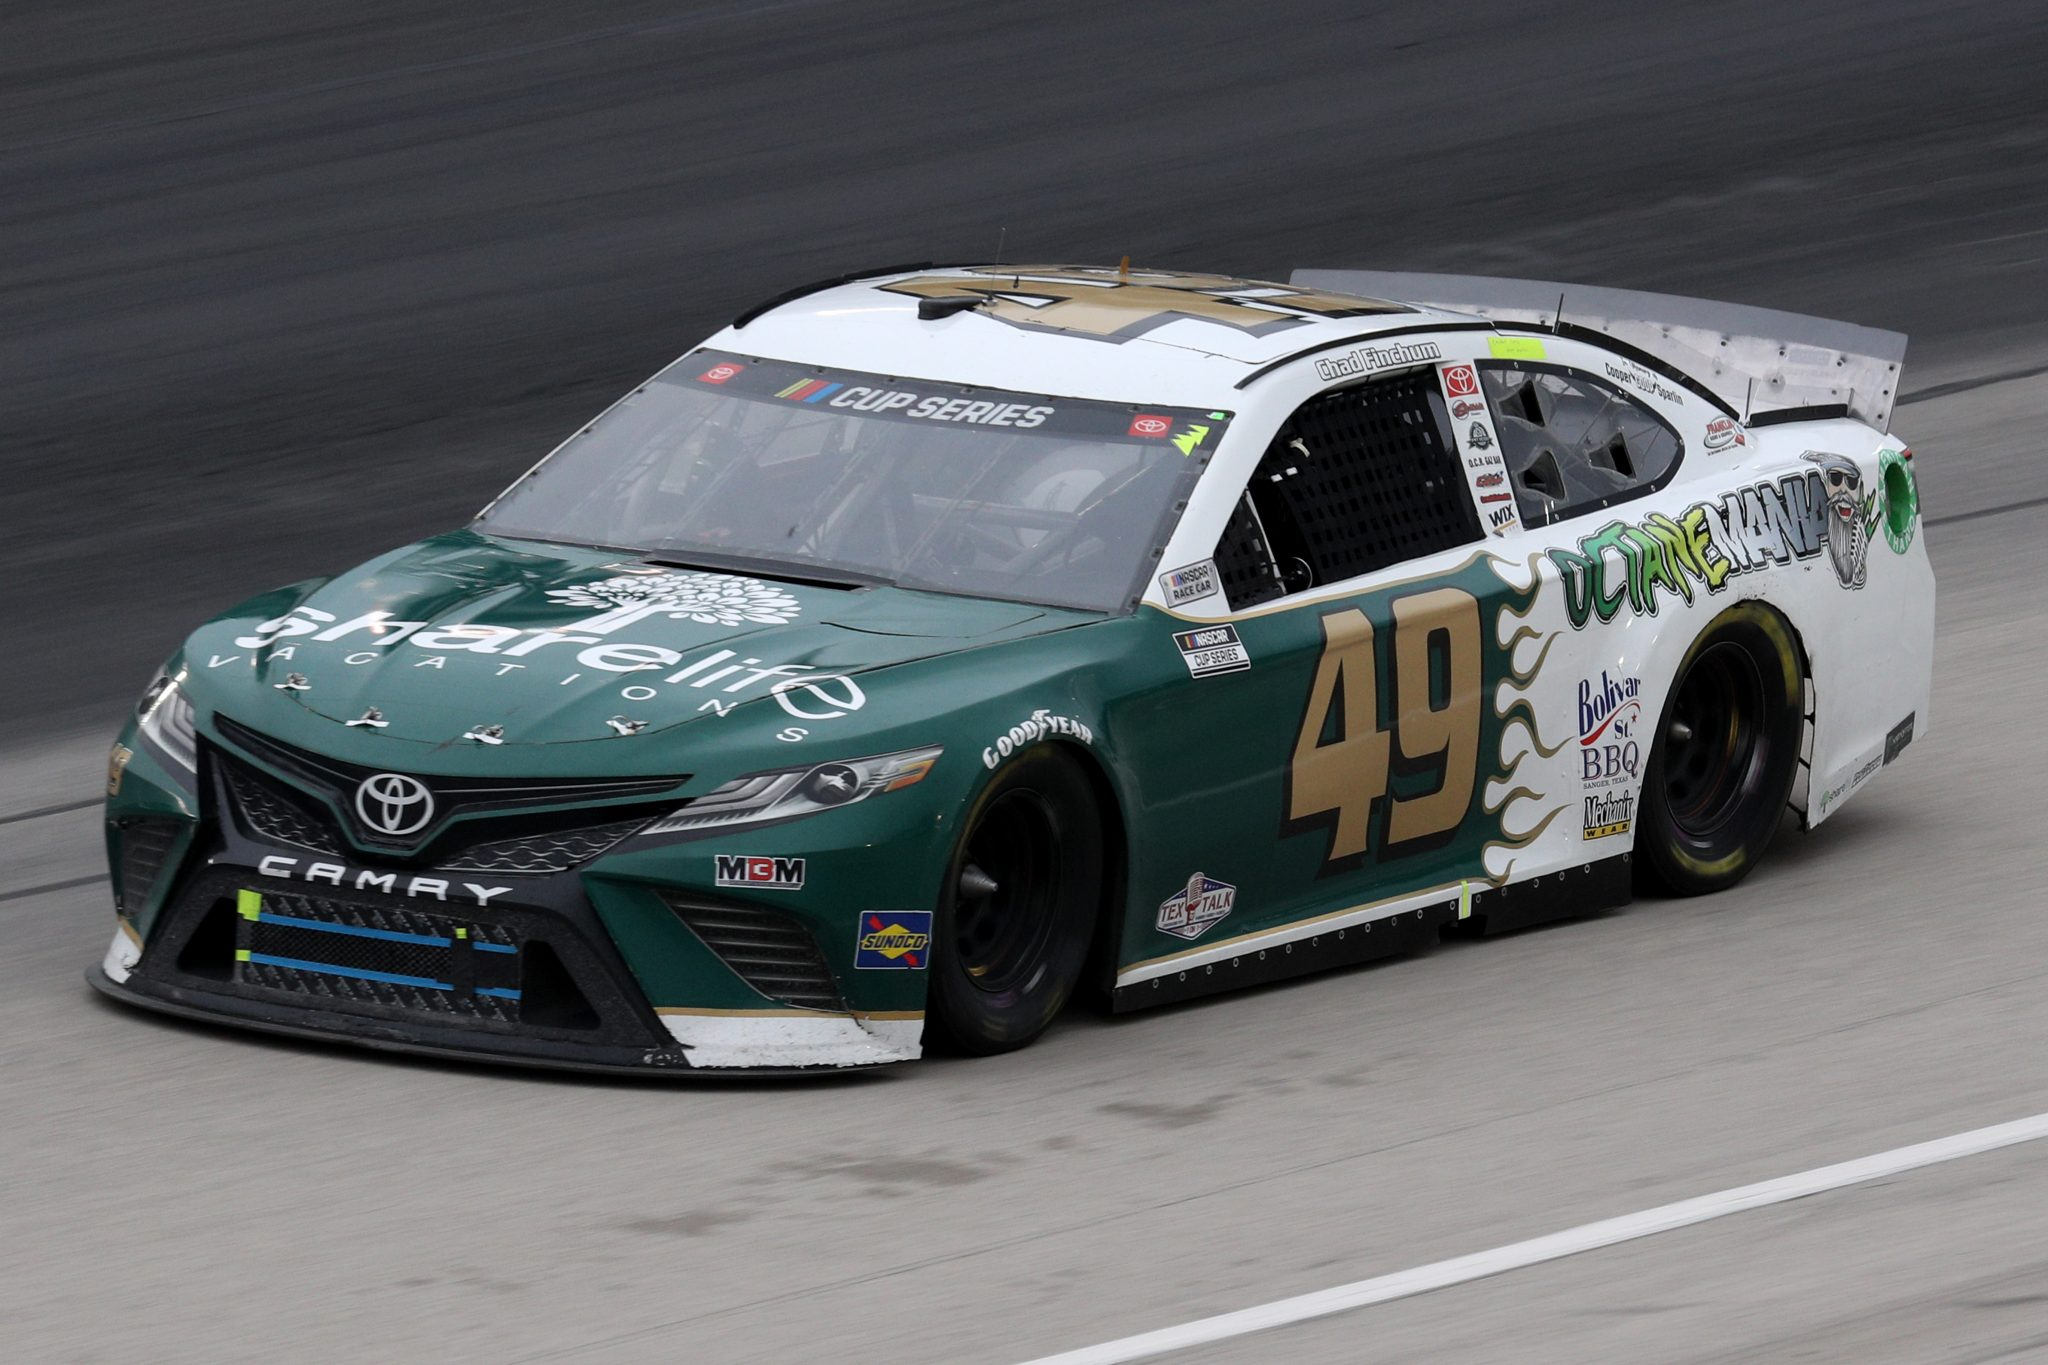 FORT WORTH, TEXAS - OCTOBER 28: Chad Finchum, driver of the #49 LasVegas.net Toyota, drives during the NASCAR Cup Series Autotrader EchoPark Automotive 500 at Texas Motor Speedway on October 28, 2020 in Fort Worth, Texas. (Photo by Chris Graythen/Getty Images) | Getty Images